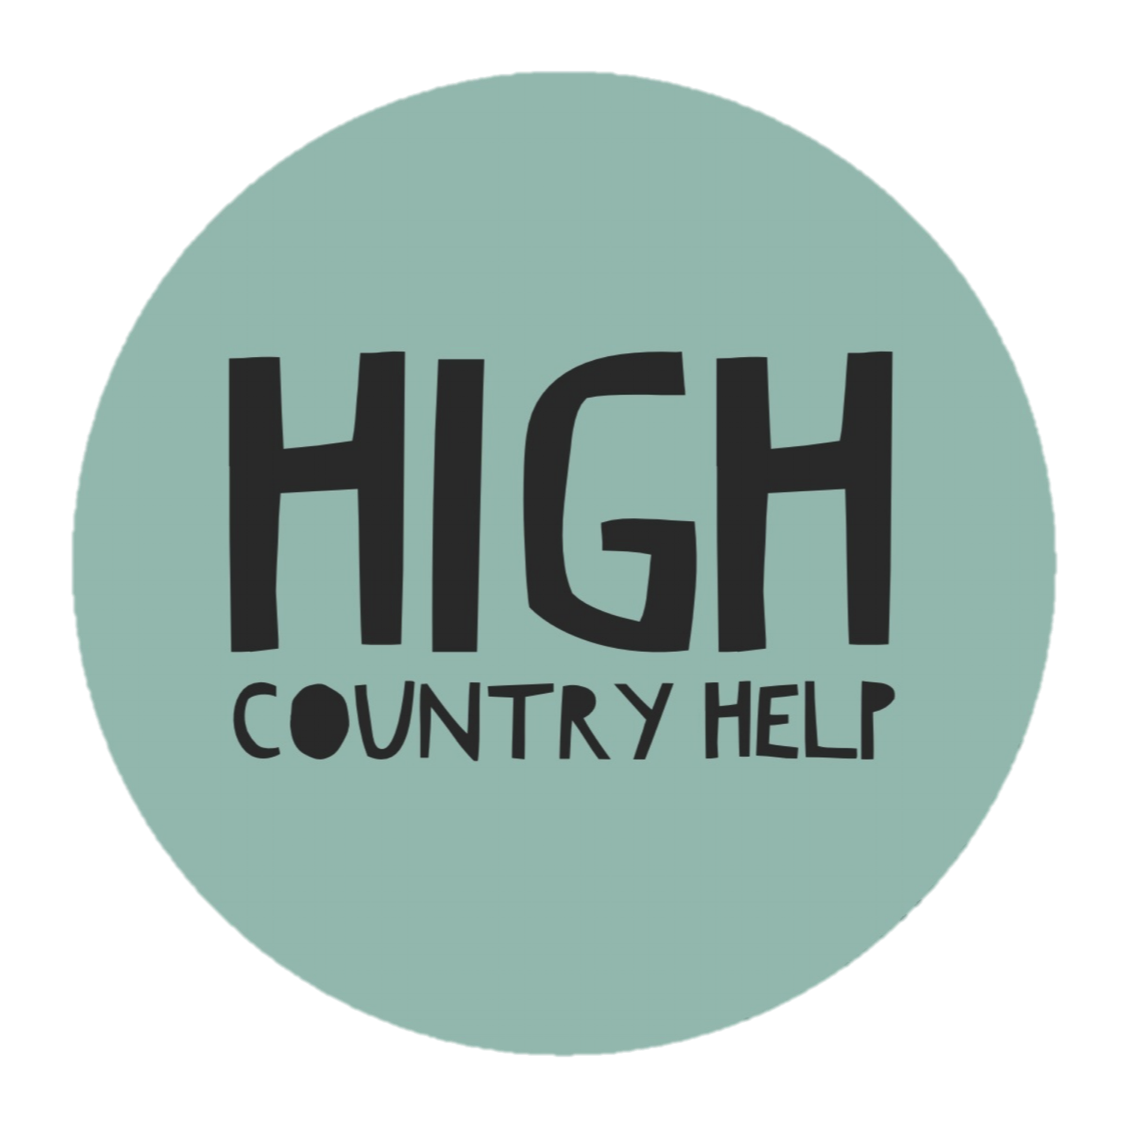 High Country Help